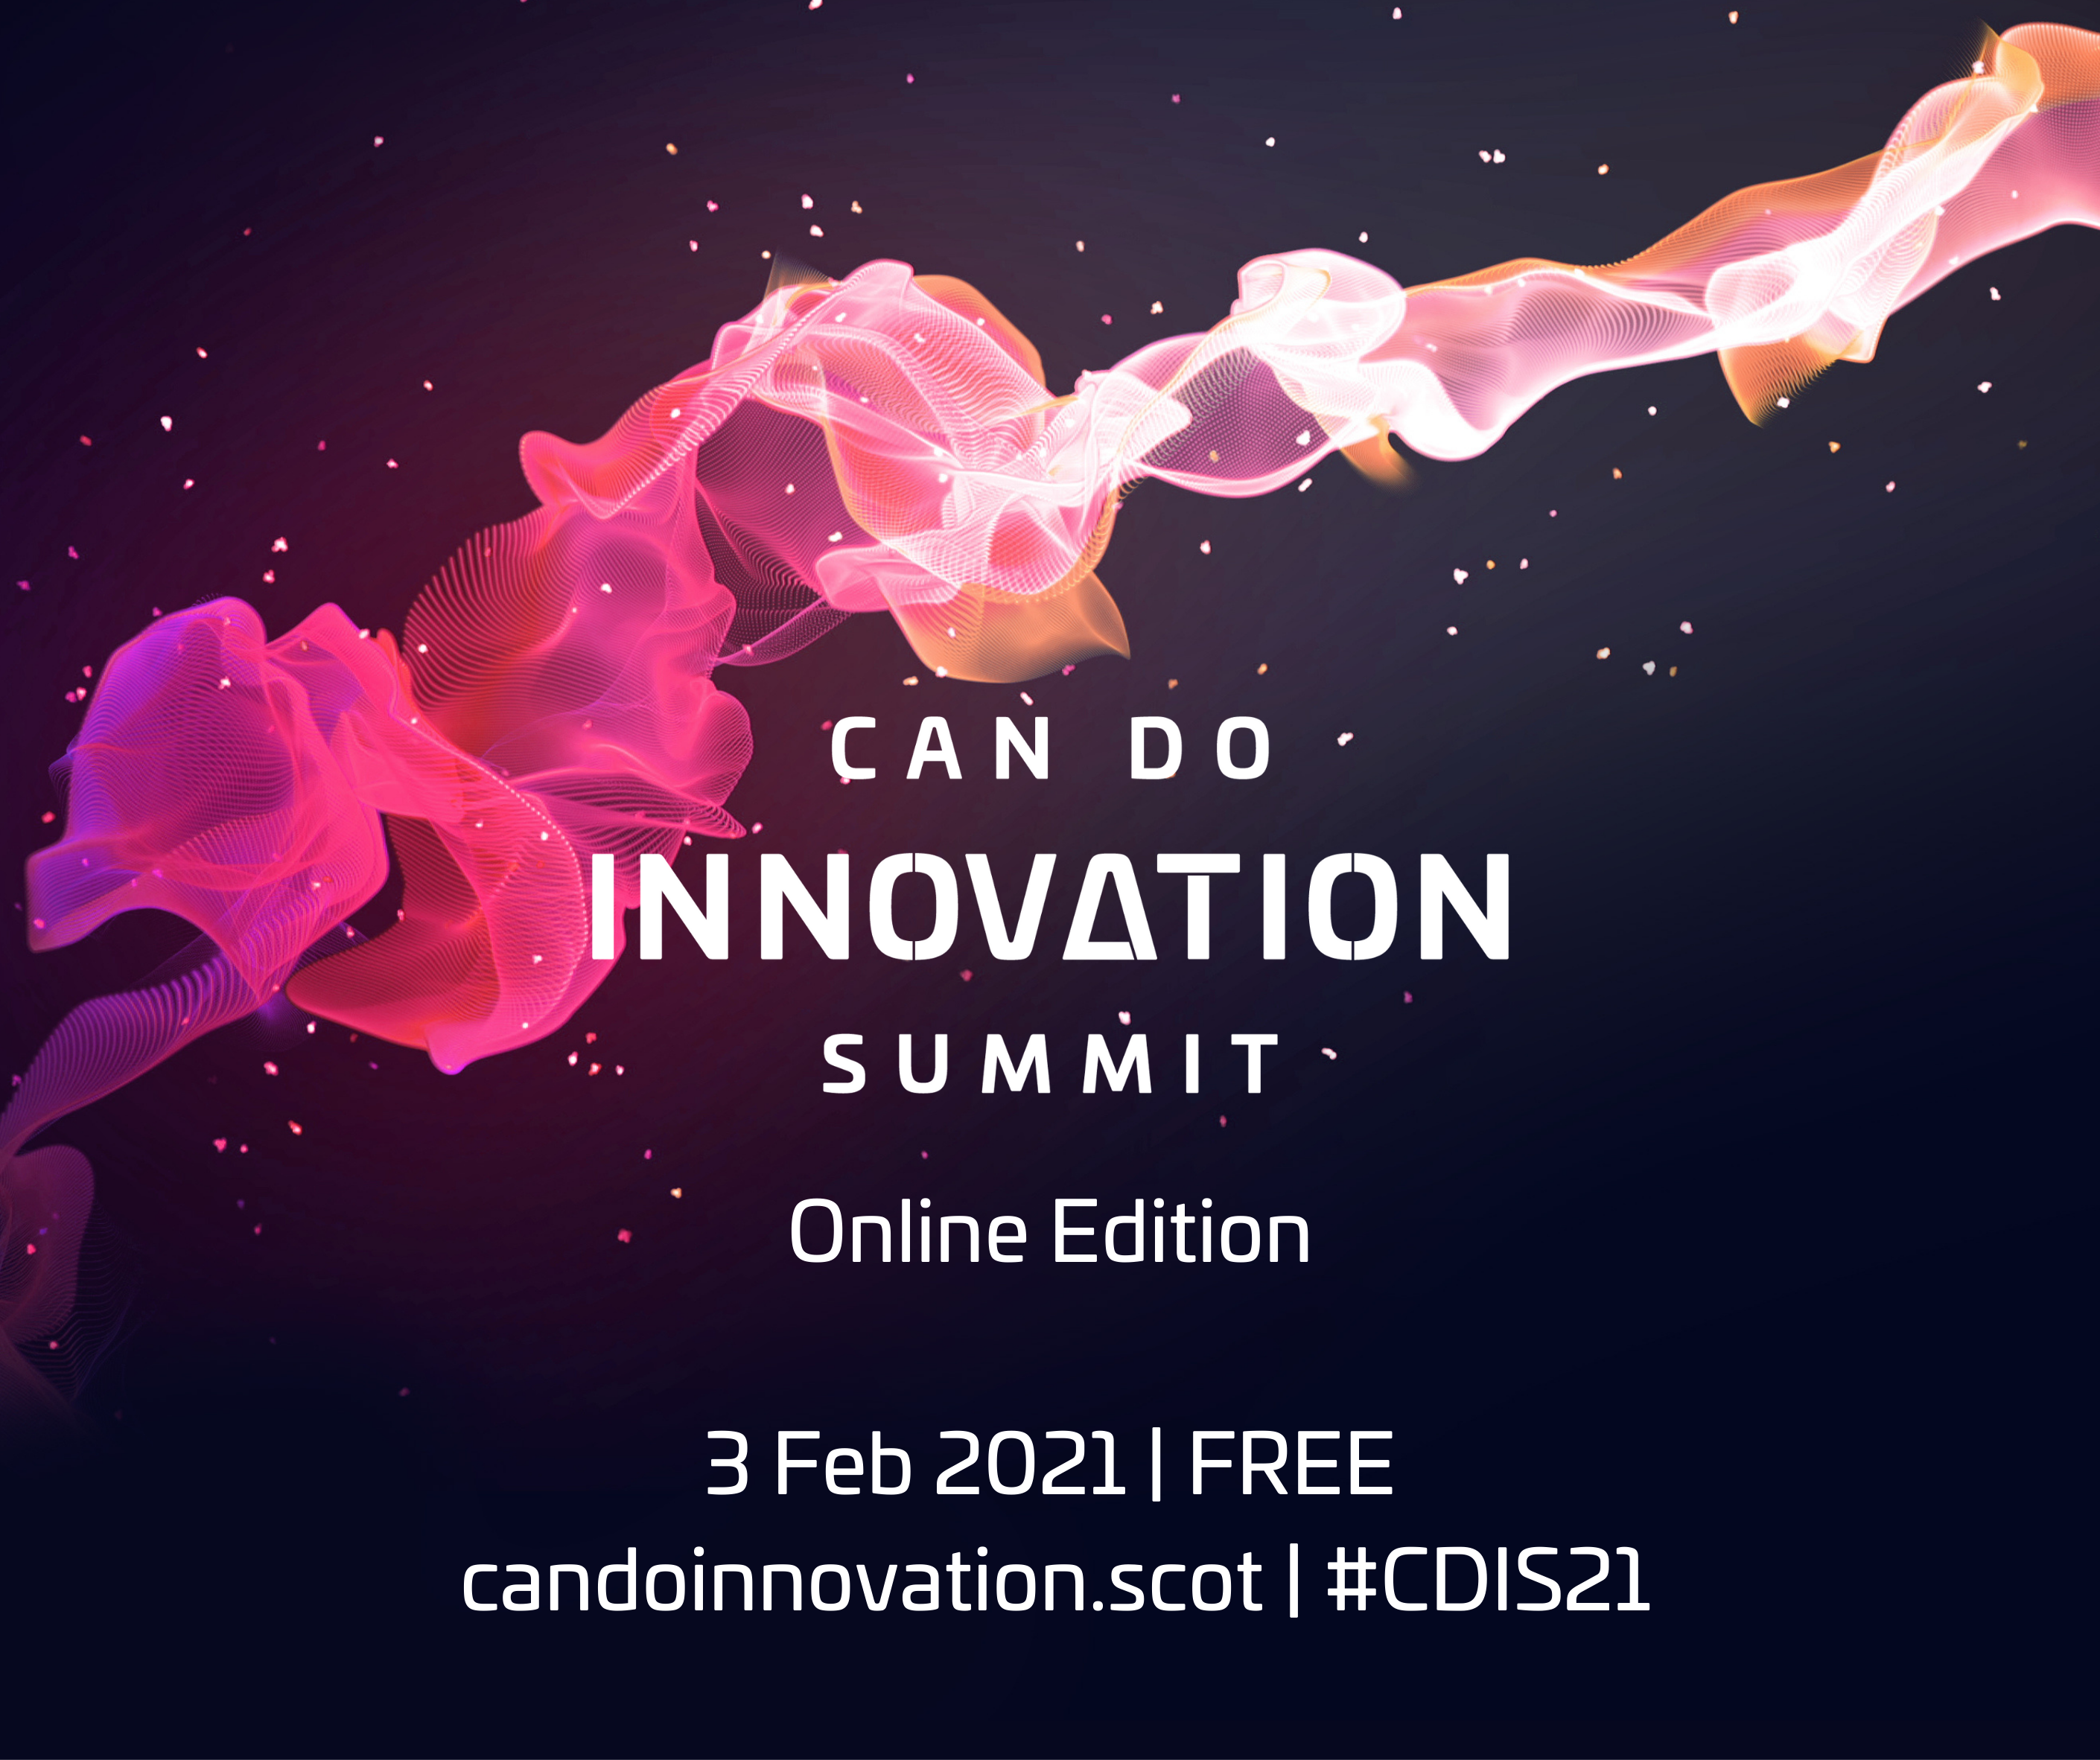 CAN DO Innovation Summit – Discovery. Resilience. Growth